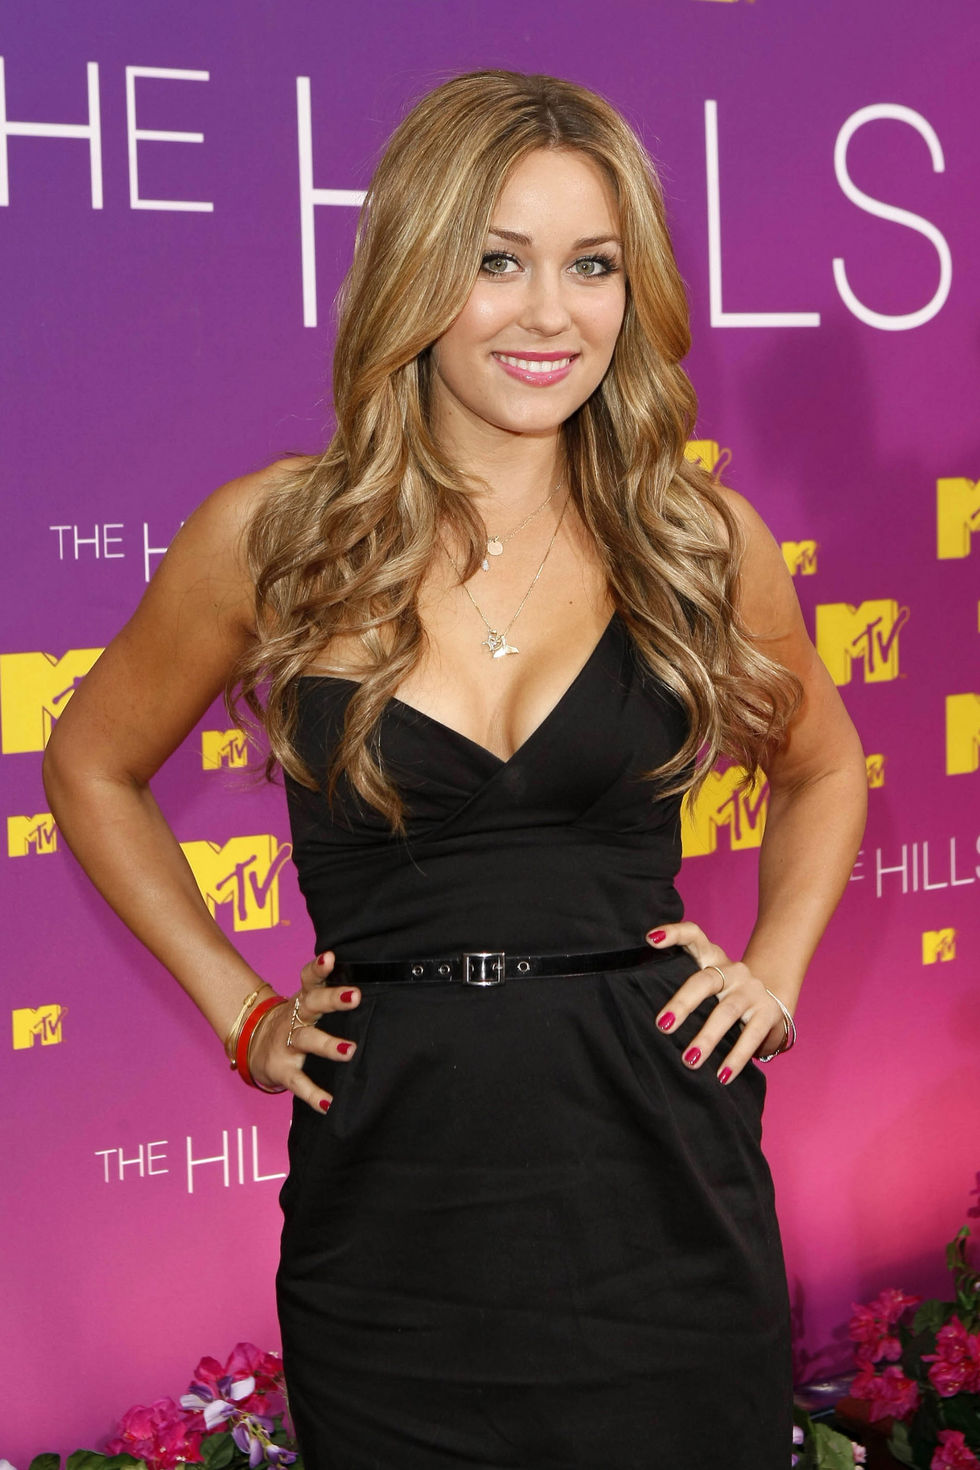 audrina-partridge-and-lauren-conrad-live-from-the-hills-season-finale-in-beverly-hills-01